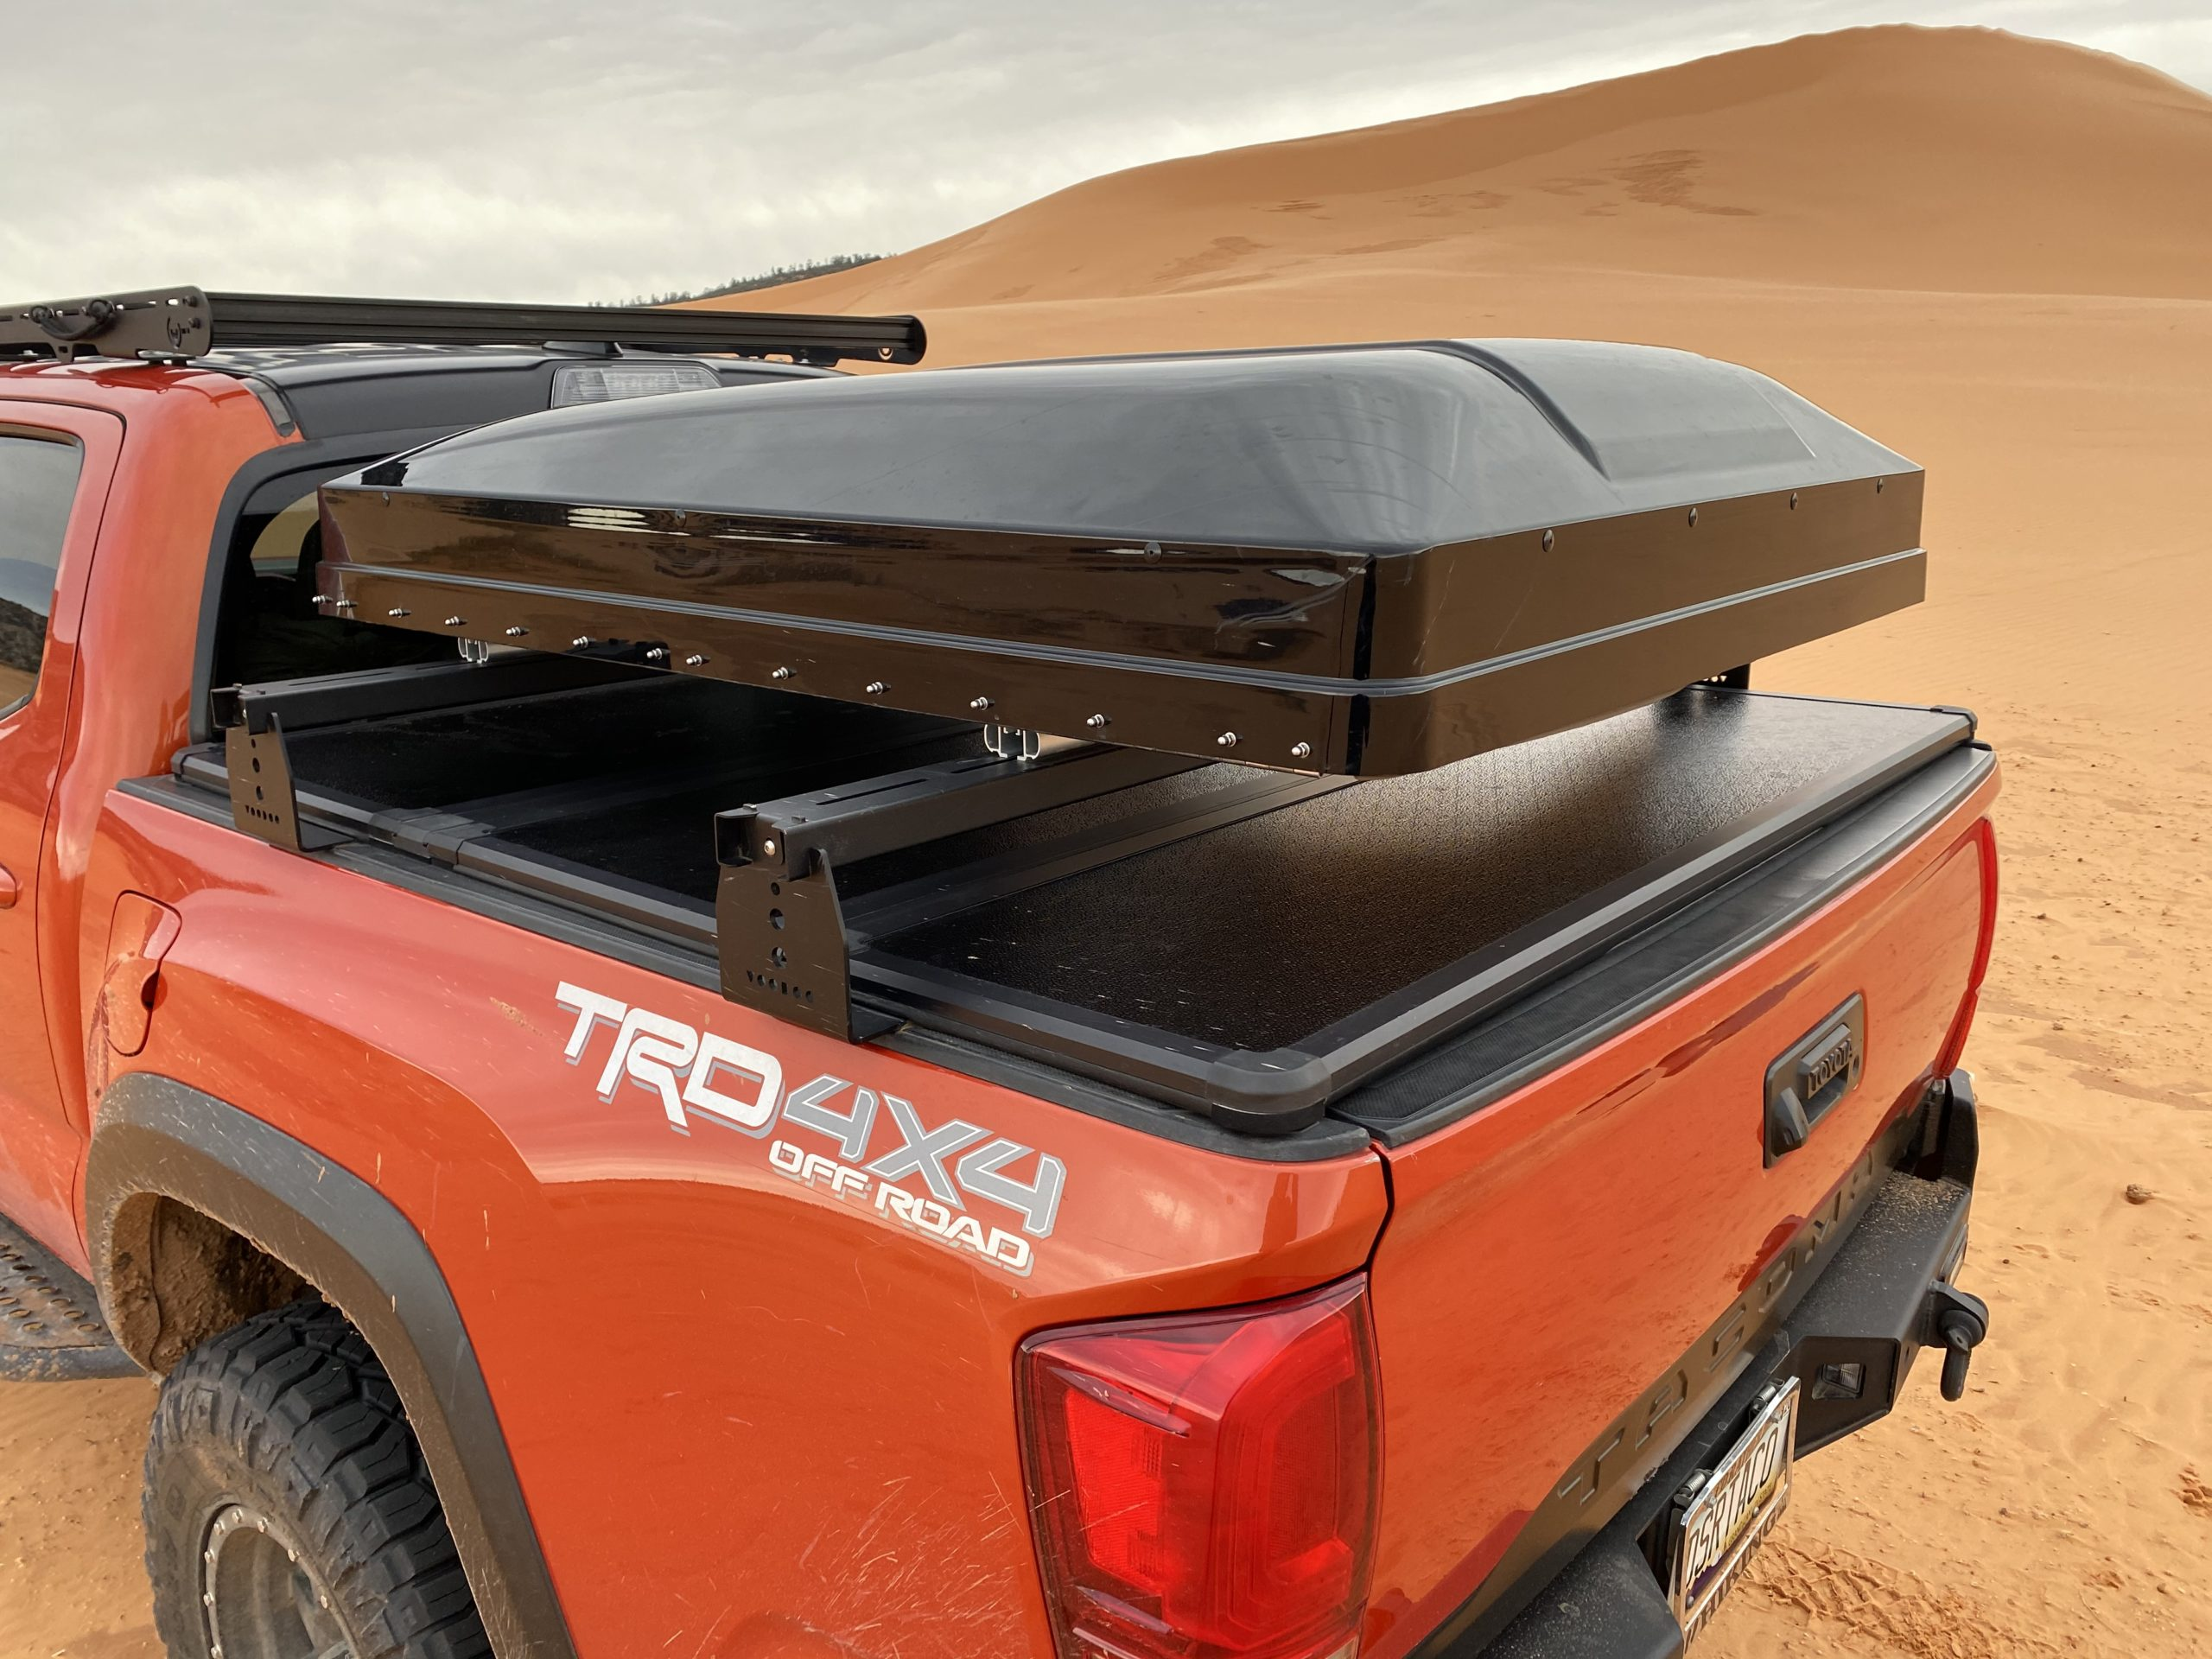 Desert Armor Warrior Roof Top Tent